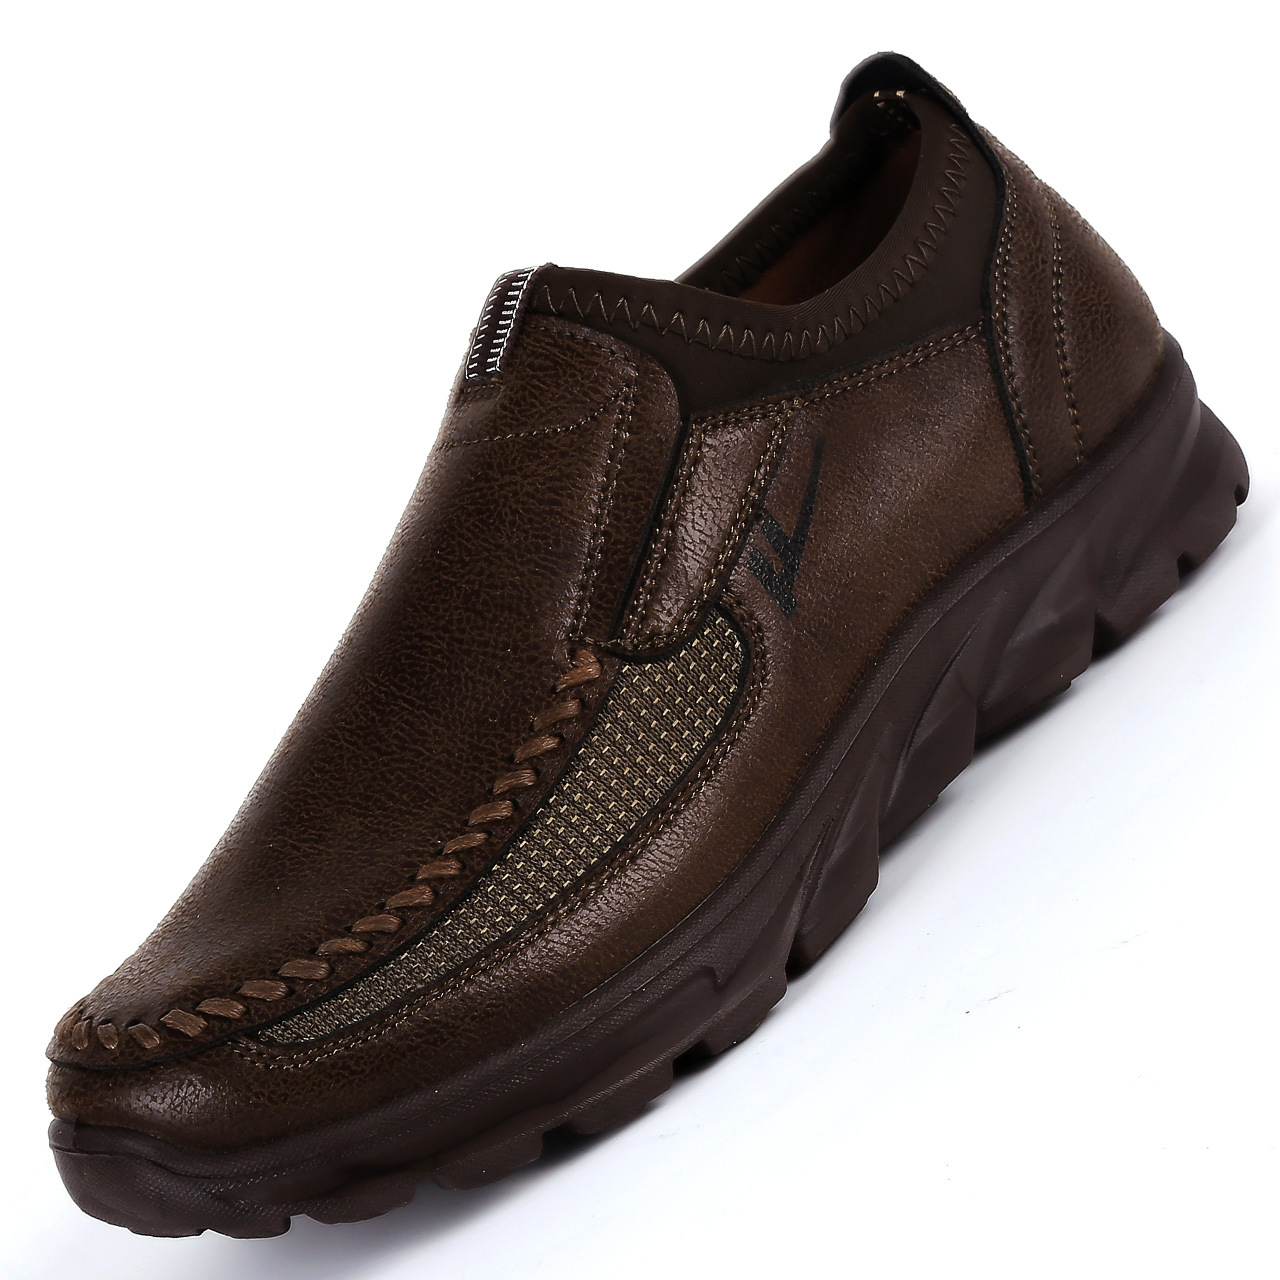 Men-039-s-Casual-Leather-Slip-On-Driving-Loafers-Antiskid-Moccasins-Breathable thumbnail 10